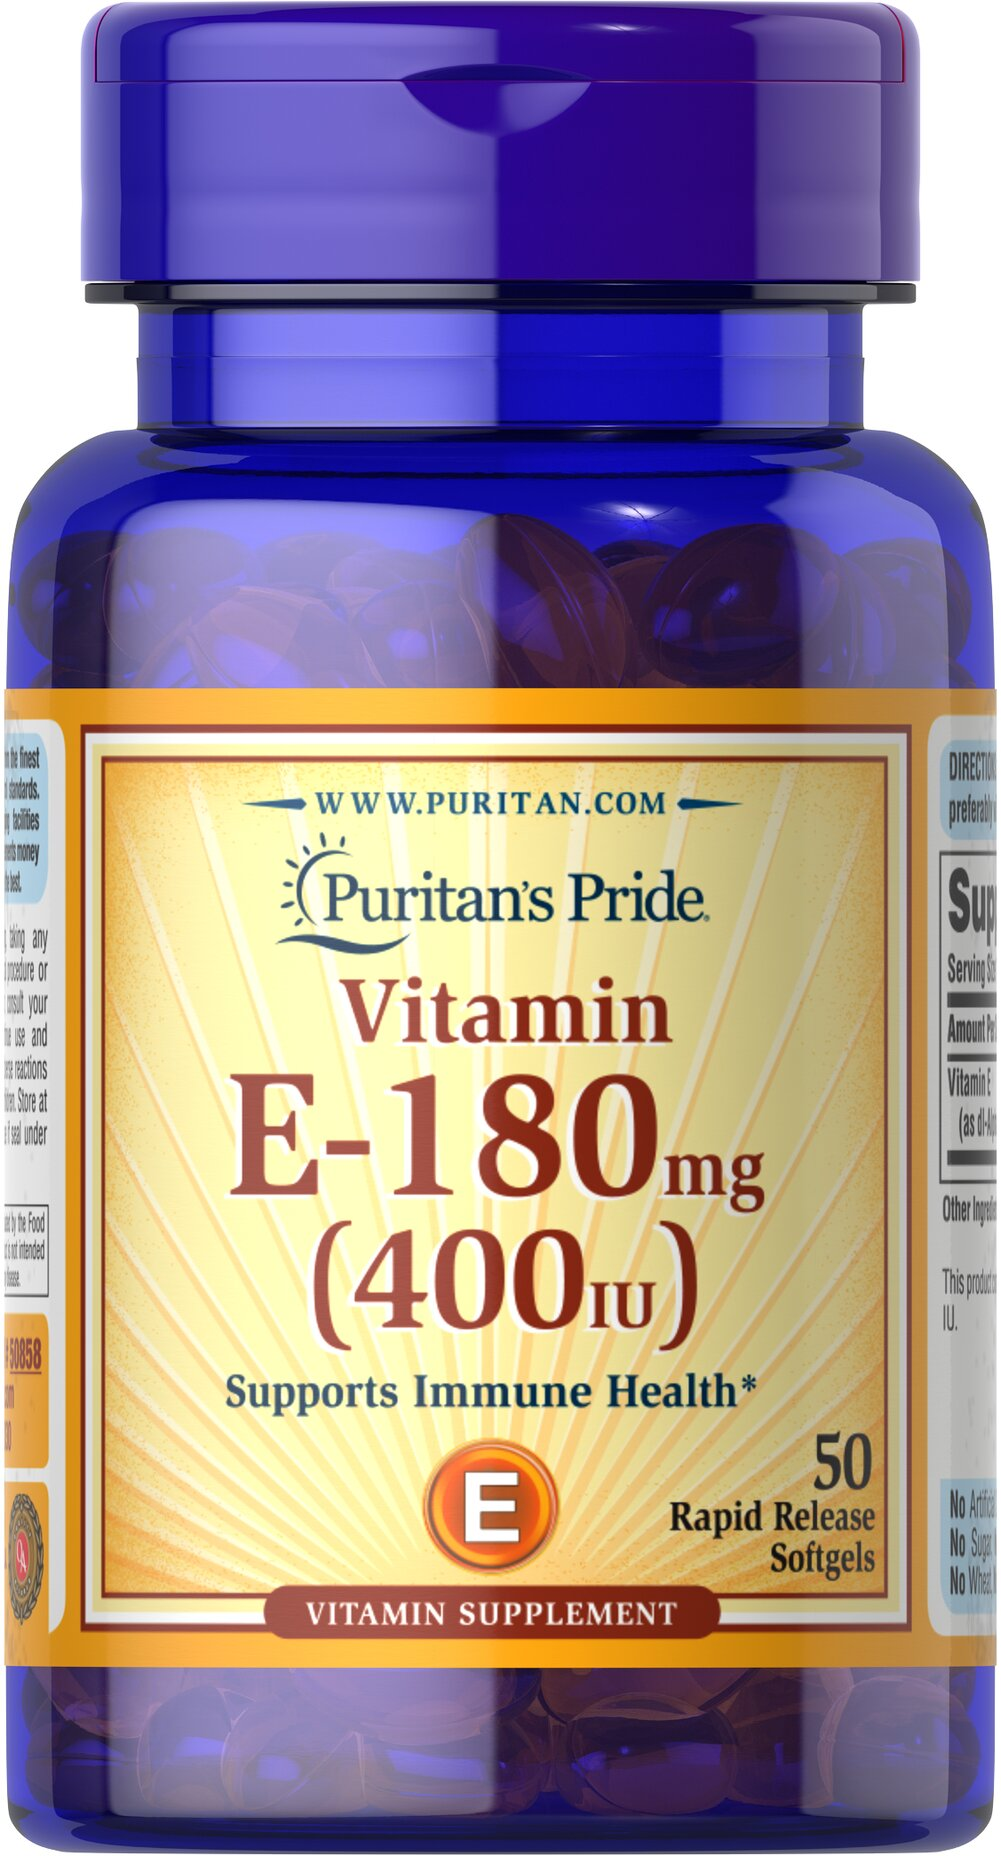 Vitamin E-400 IU Thumbnail Alternate Bottle View